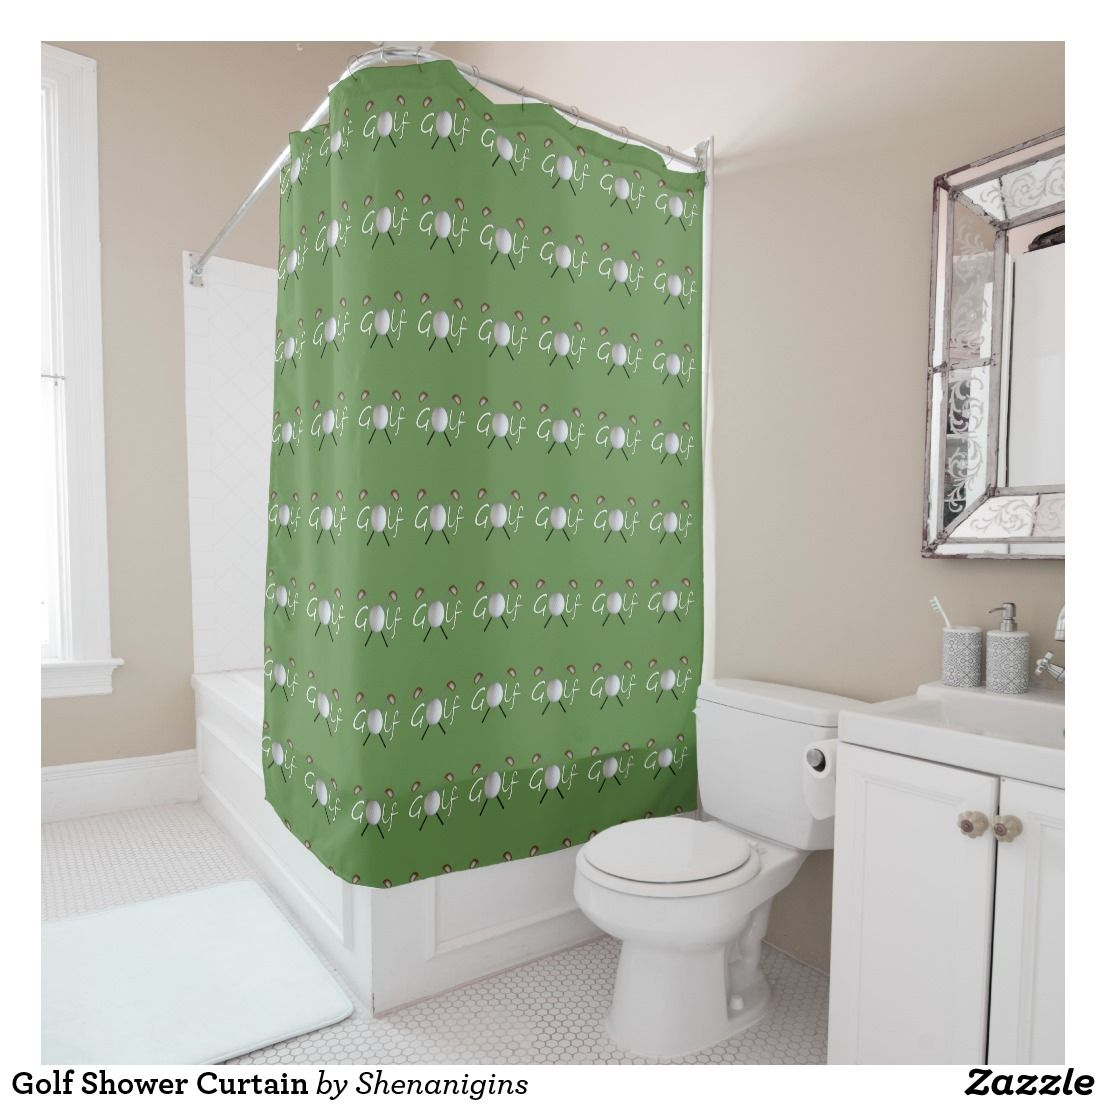 Golf Shower Curtain We Also Have A Matching Bath Mat Towels And Soap Toothbrush Dispenser GolfBall GolfClubs ShowerCurtain Bathroom